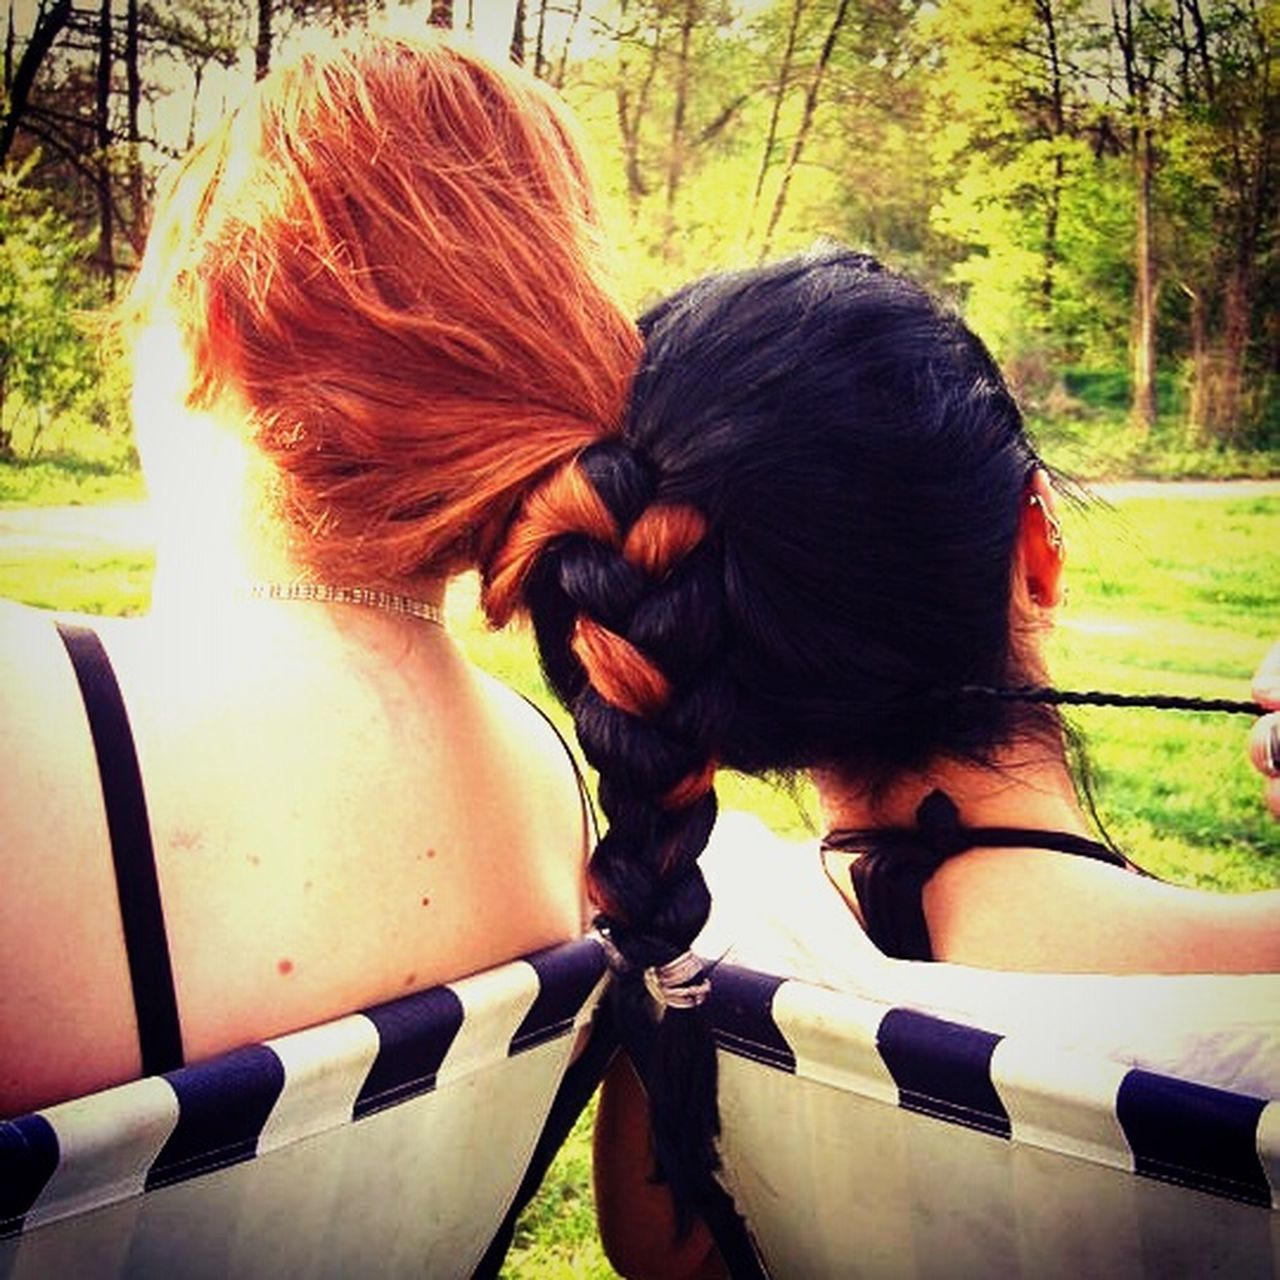 Friends Friendship Braid Fishtail Braid Longhair Bff Girls Darkhair Slovakiagirls Funnythings Redhair Girly Slovakiagirl Slovakgirl Slovakia Slovakgirls Crazyfriends Friend Togetherness Together Together Forever Makingmemories Old Good Days Have Fun Funny Moments